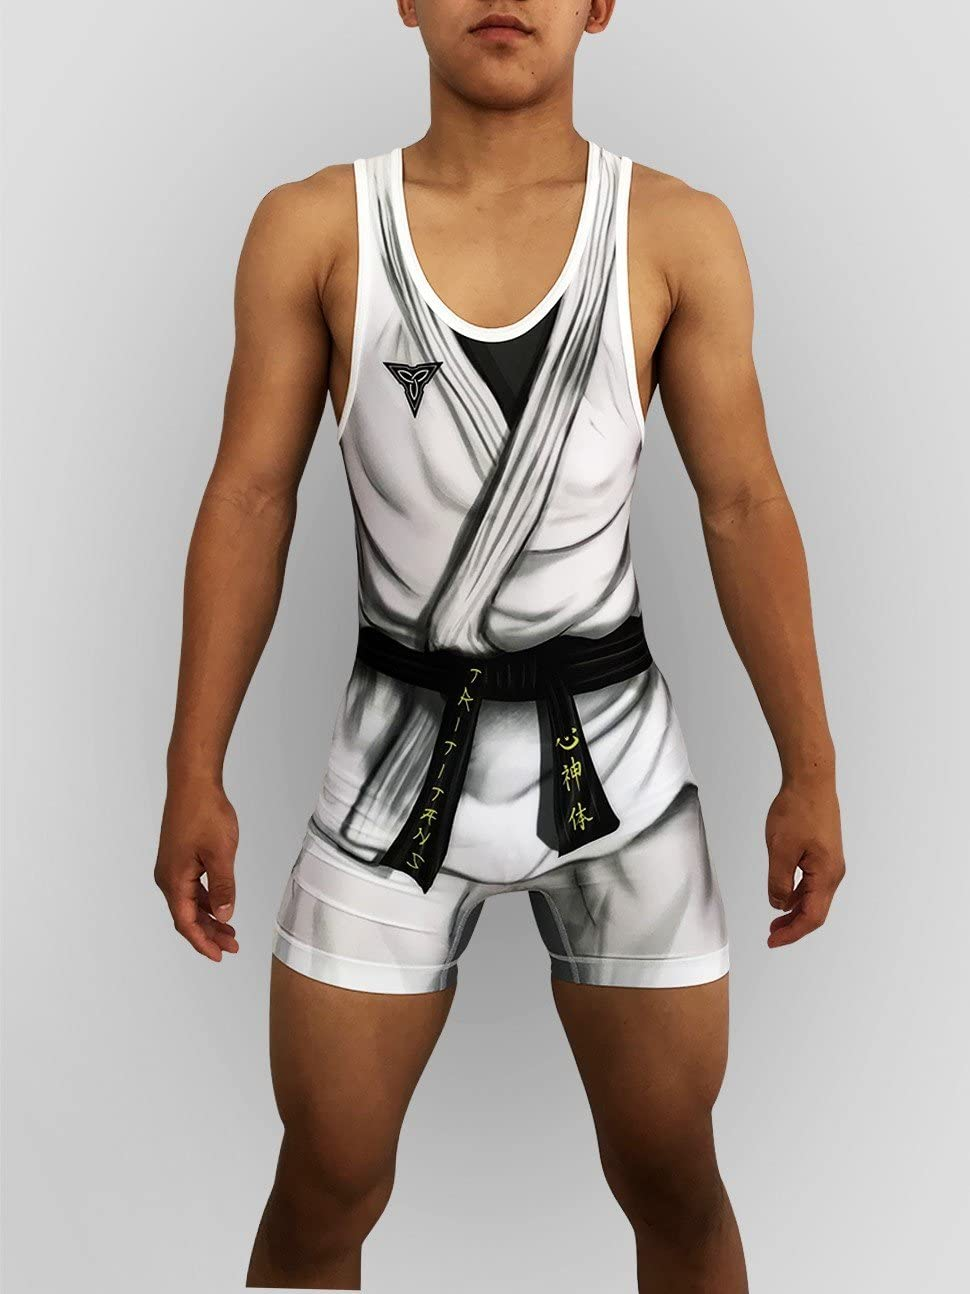 TRI-TITANS Haduken Street Fighter Wrestling Singlet Folkstyle Youths and Adult Mens Sizes